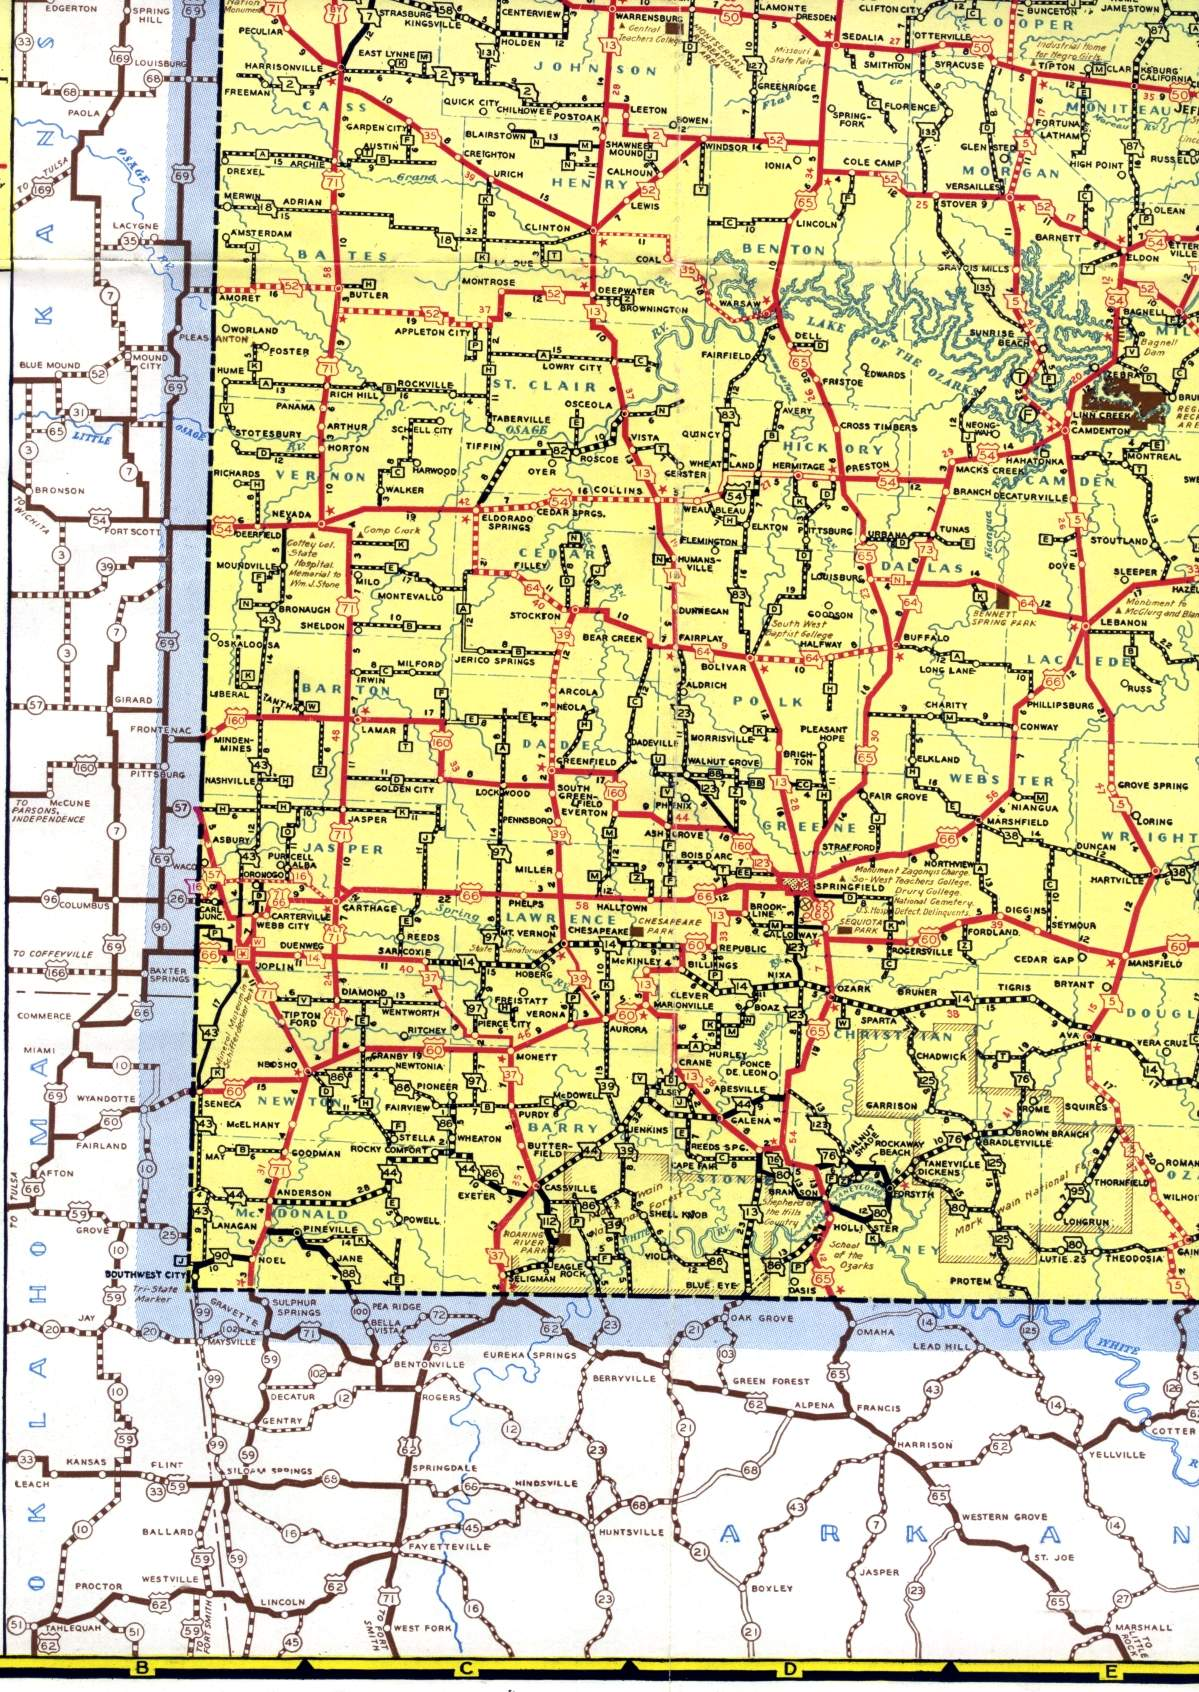 Missouri Highways (unofficial)   Section of 1940 official highway map